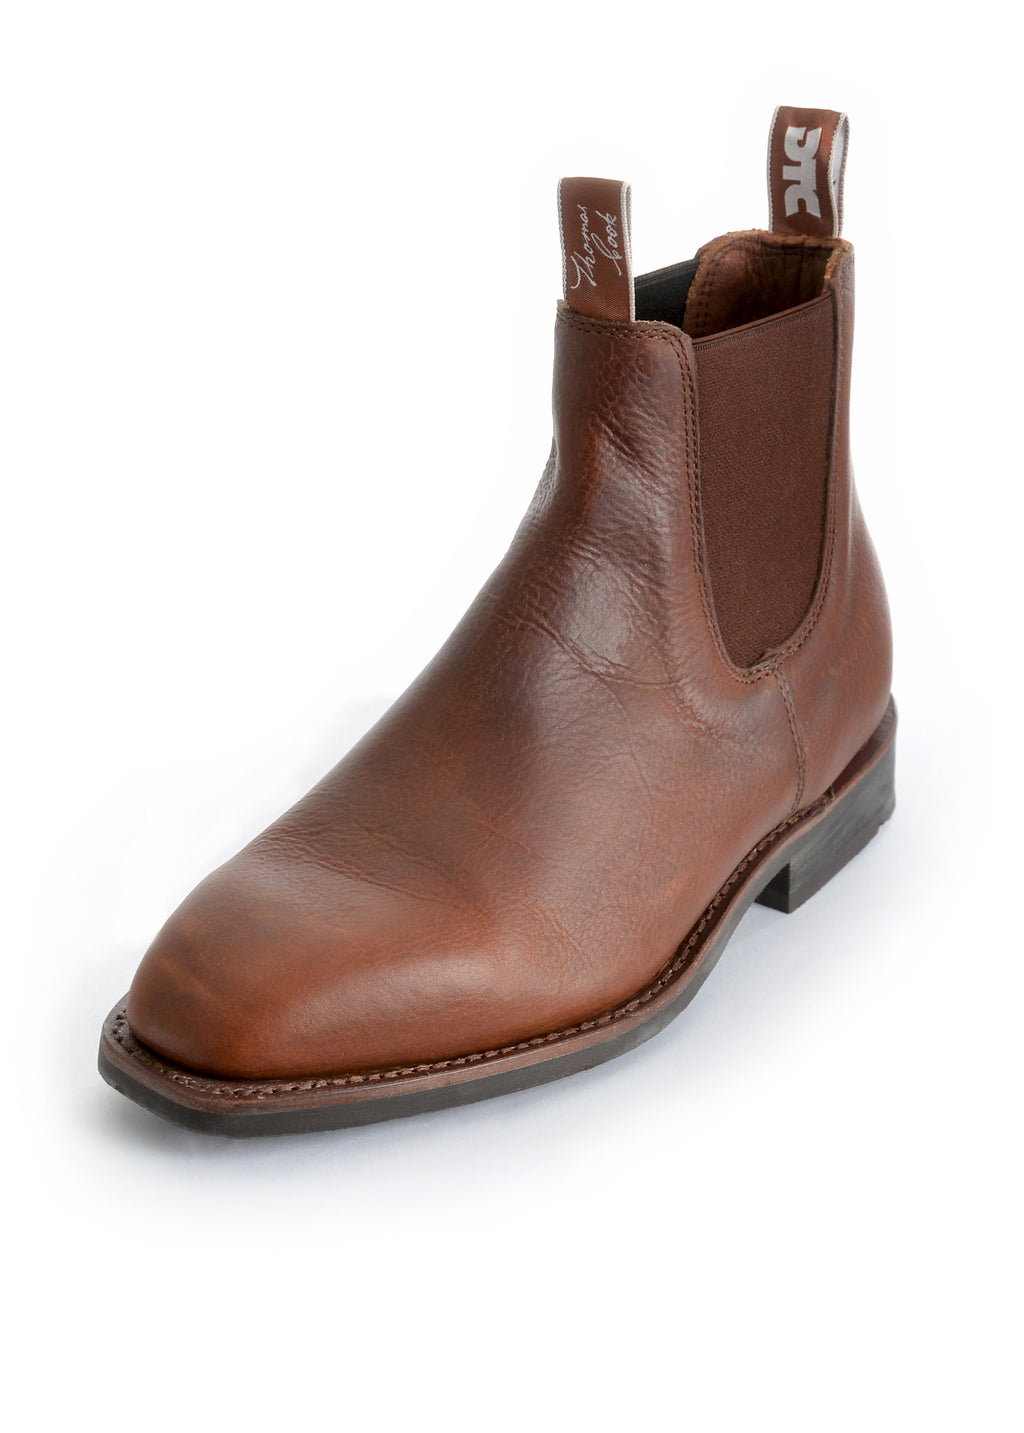 Thomas Cook | Mens | Boots | Dress | Duramax DTC Classic | Brown Coachman - BK8 Outfitters Australia